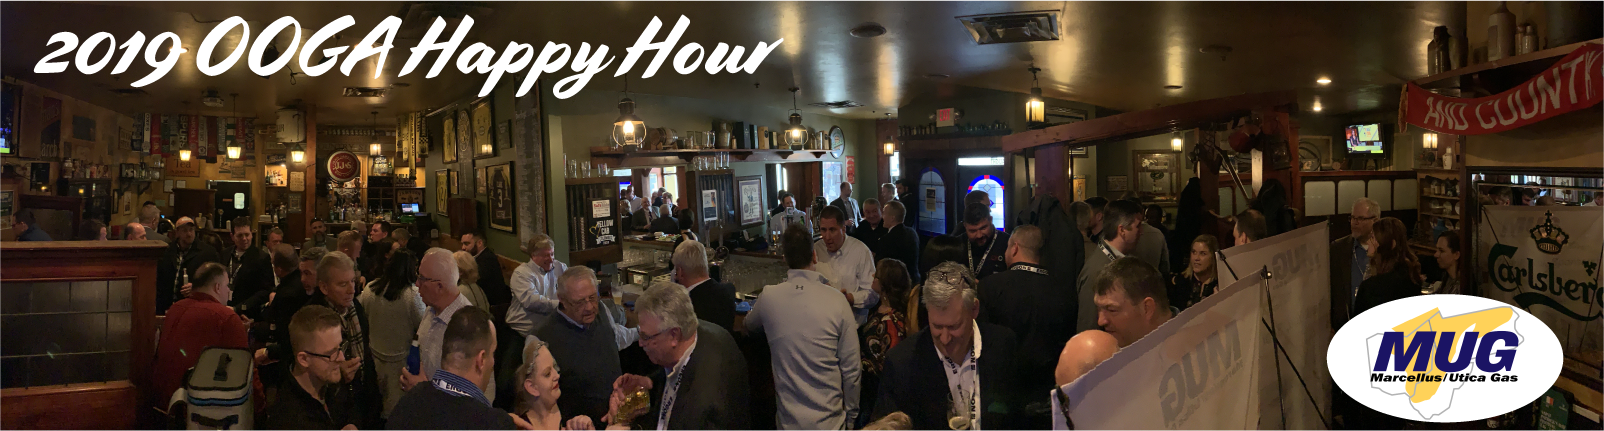 The Marcellus & Utica Gas Suppliers, Services, and Manufacturers Association's happy hour event held during the 2019 Ohio Oil and Gas Association's Annual Meeting in Columbus, OH on March 7, 2019.